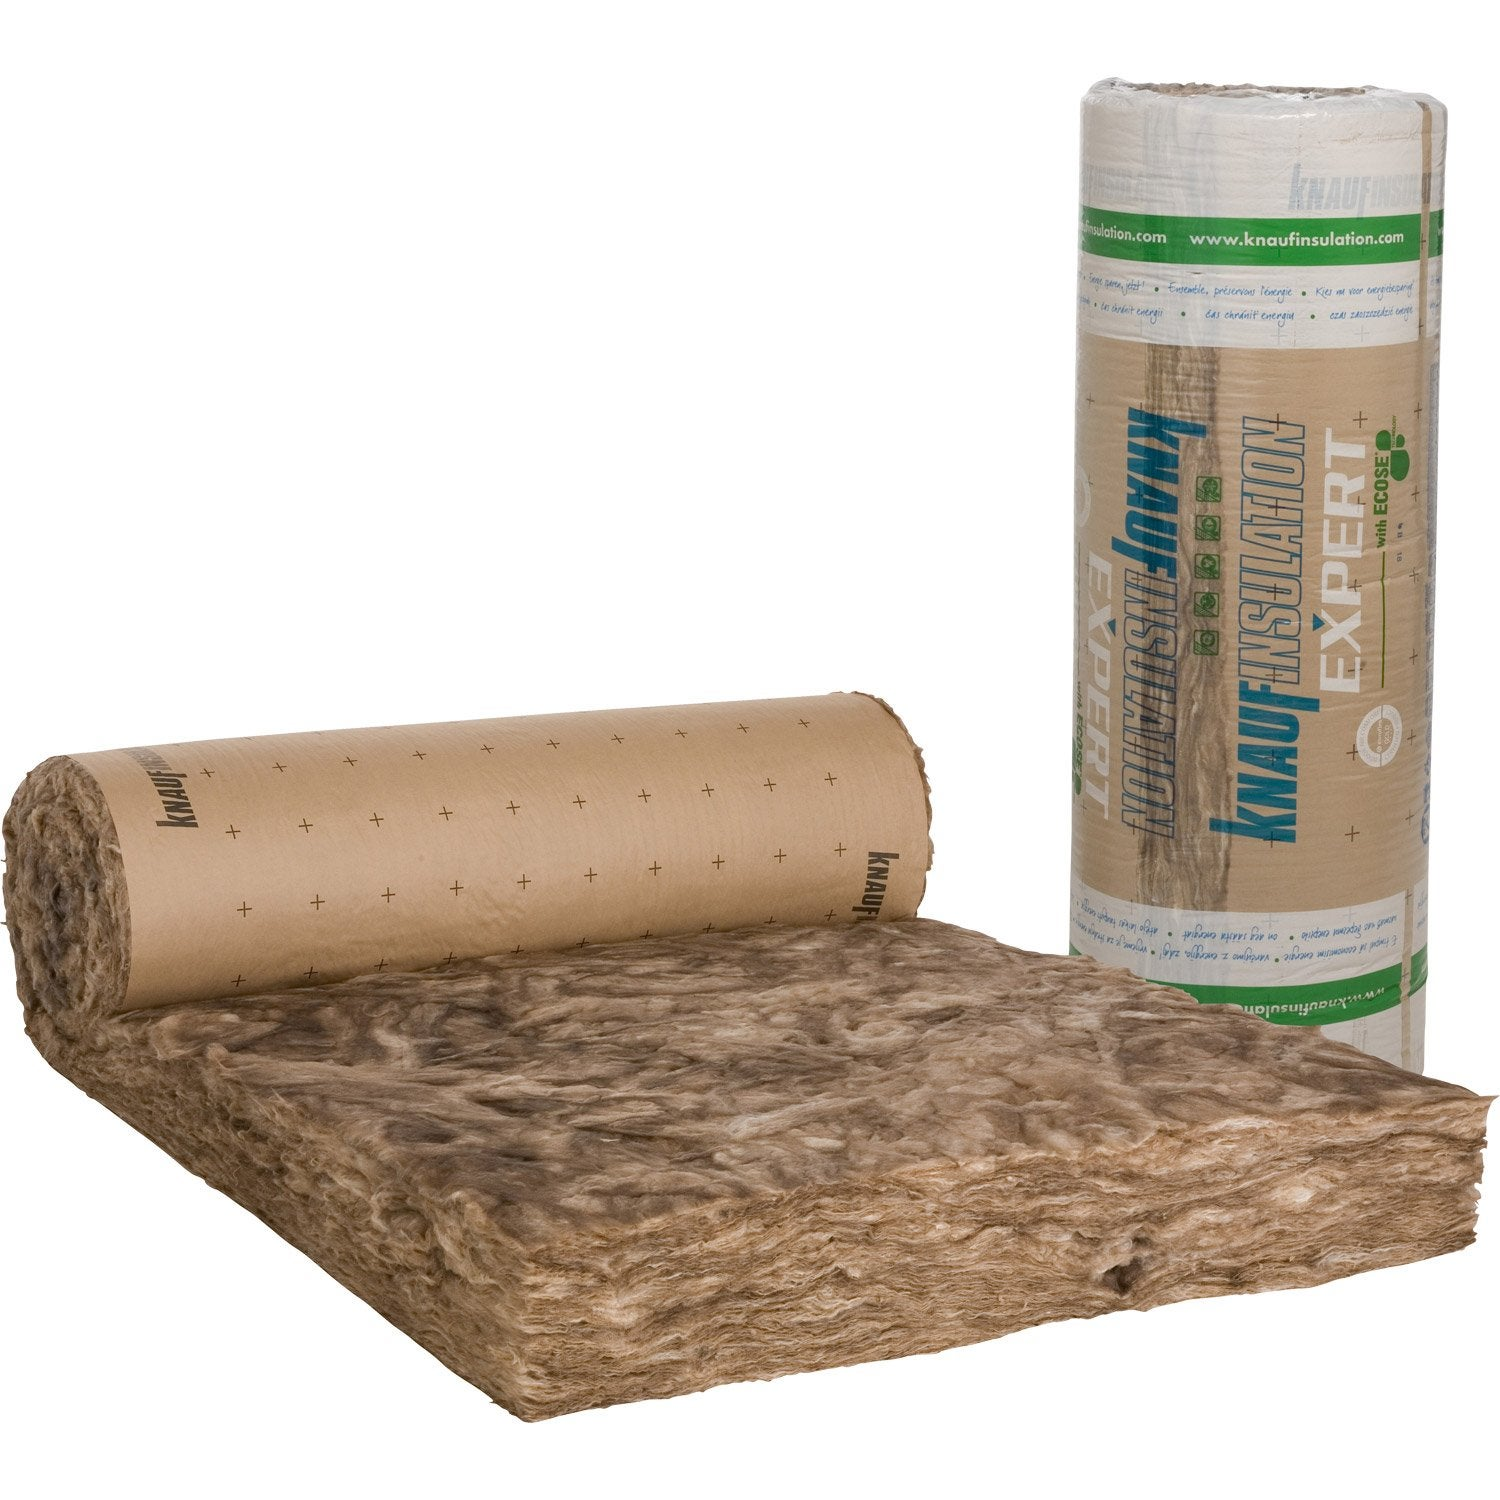 Laine de verre kraft knauf insulation 5 4 x 1 2 m ep 200 - Laine de verre isolation ...